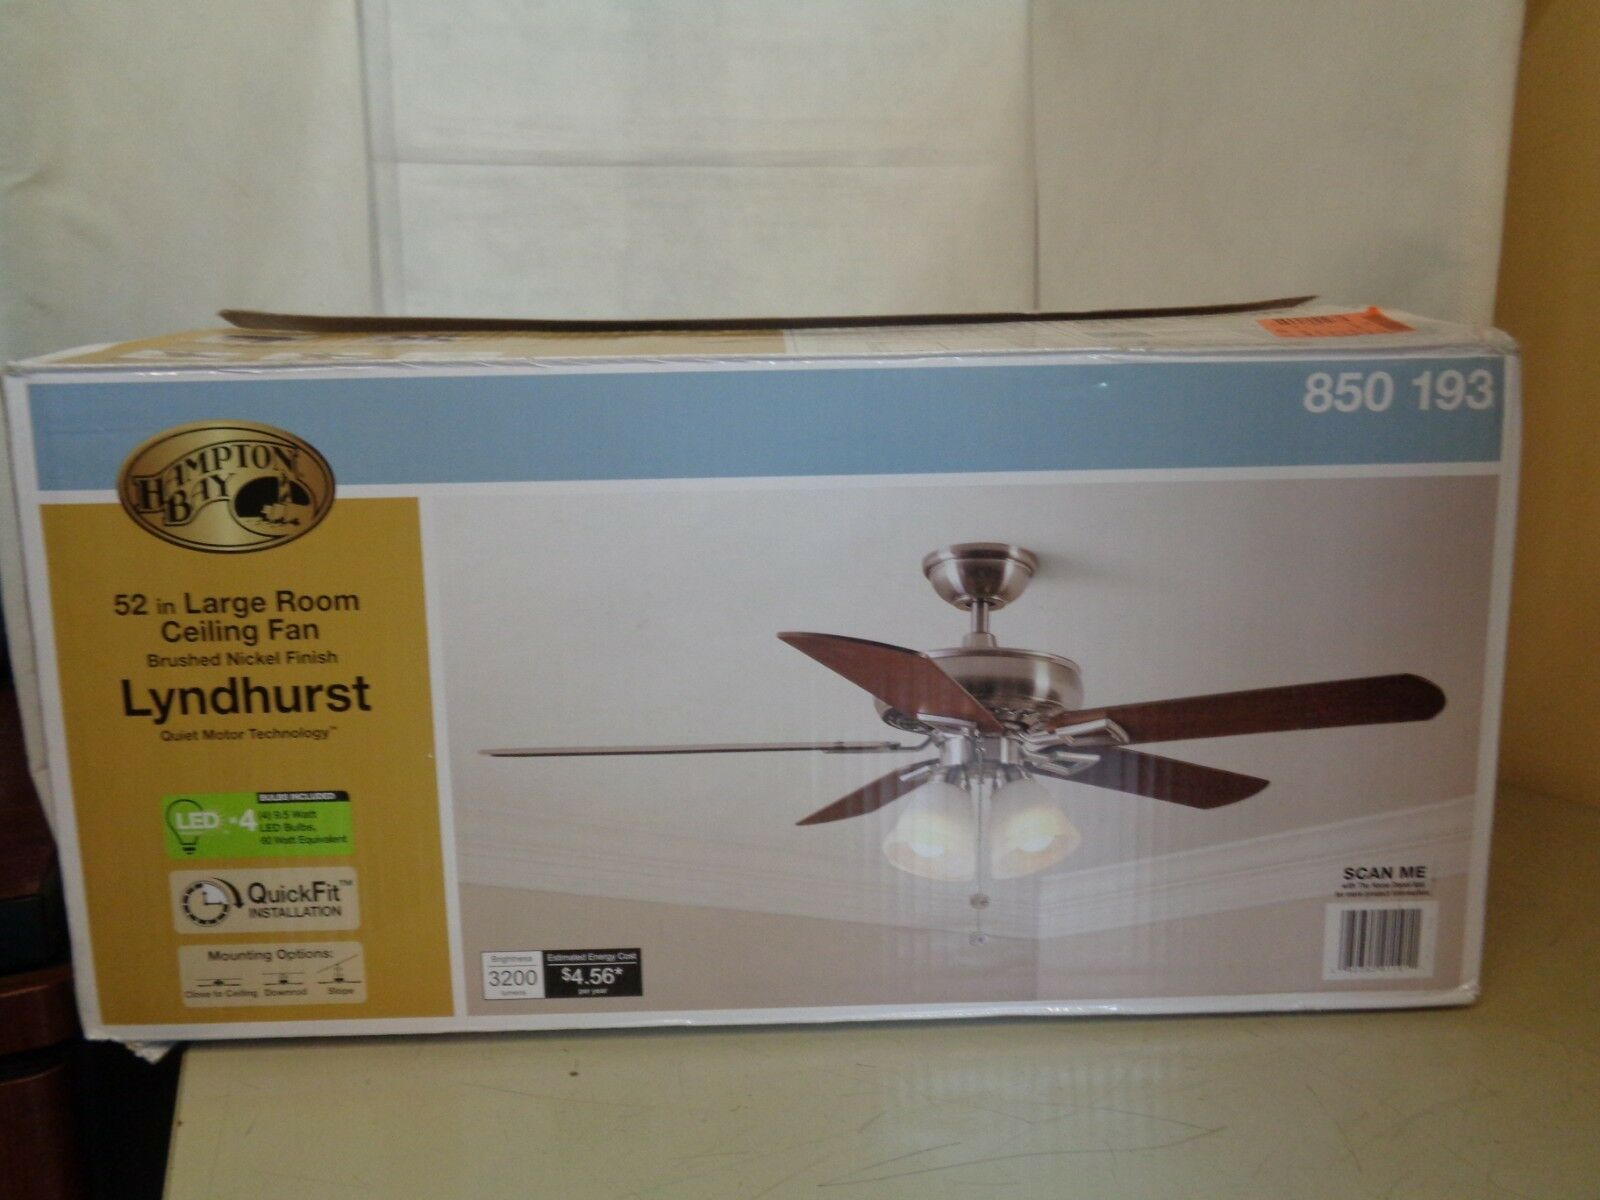 New Hampton Bay 850 193 850193 52 Large Room Ceiling Fan Brushed Nickel Finish Ceiling Fans Ide Ceiling Fan Ceiling Fans Without Lights Bottle Opener Wall